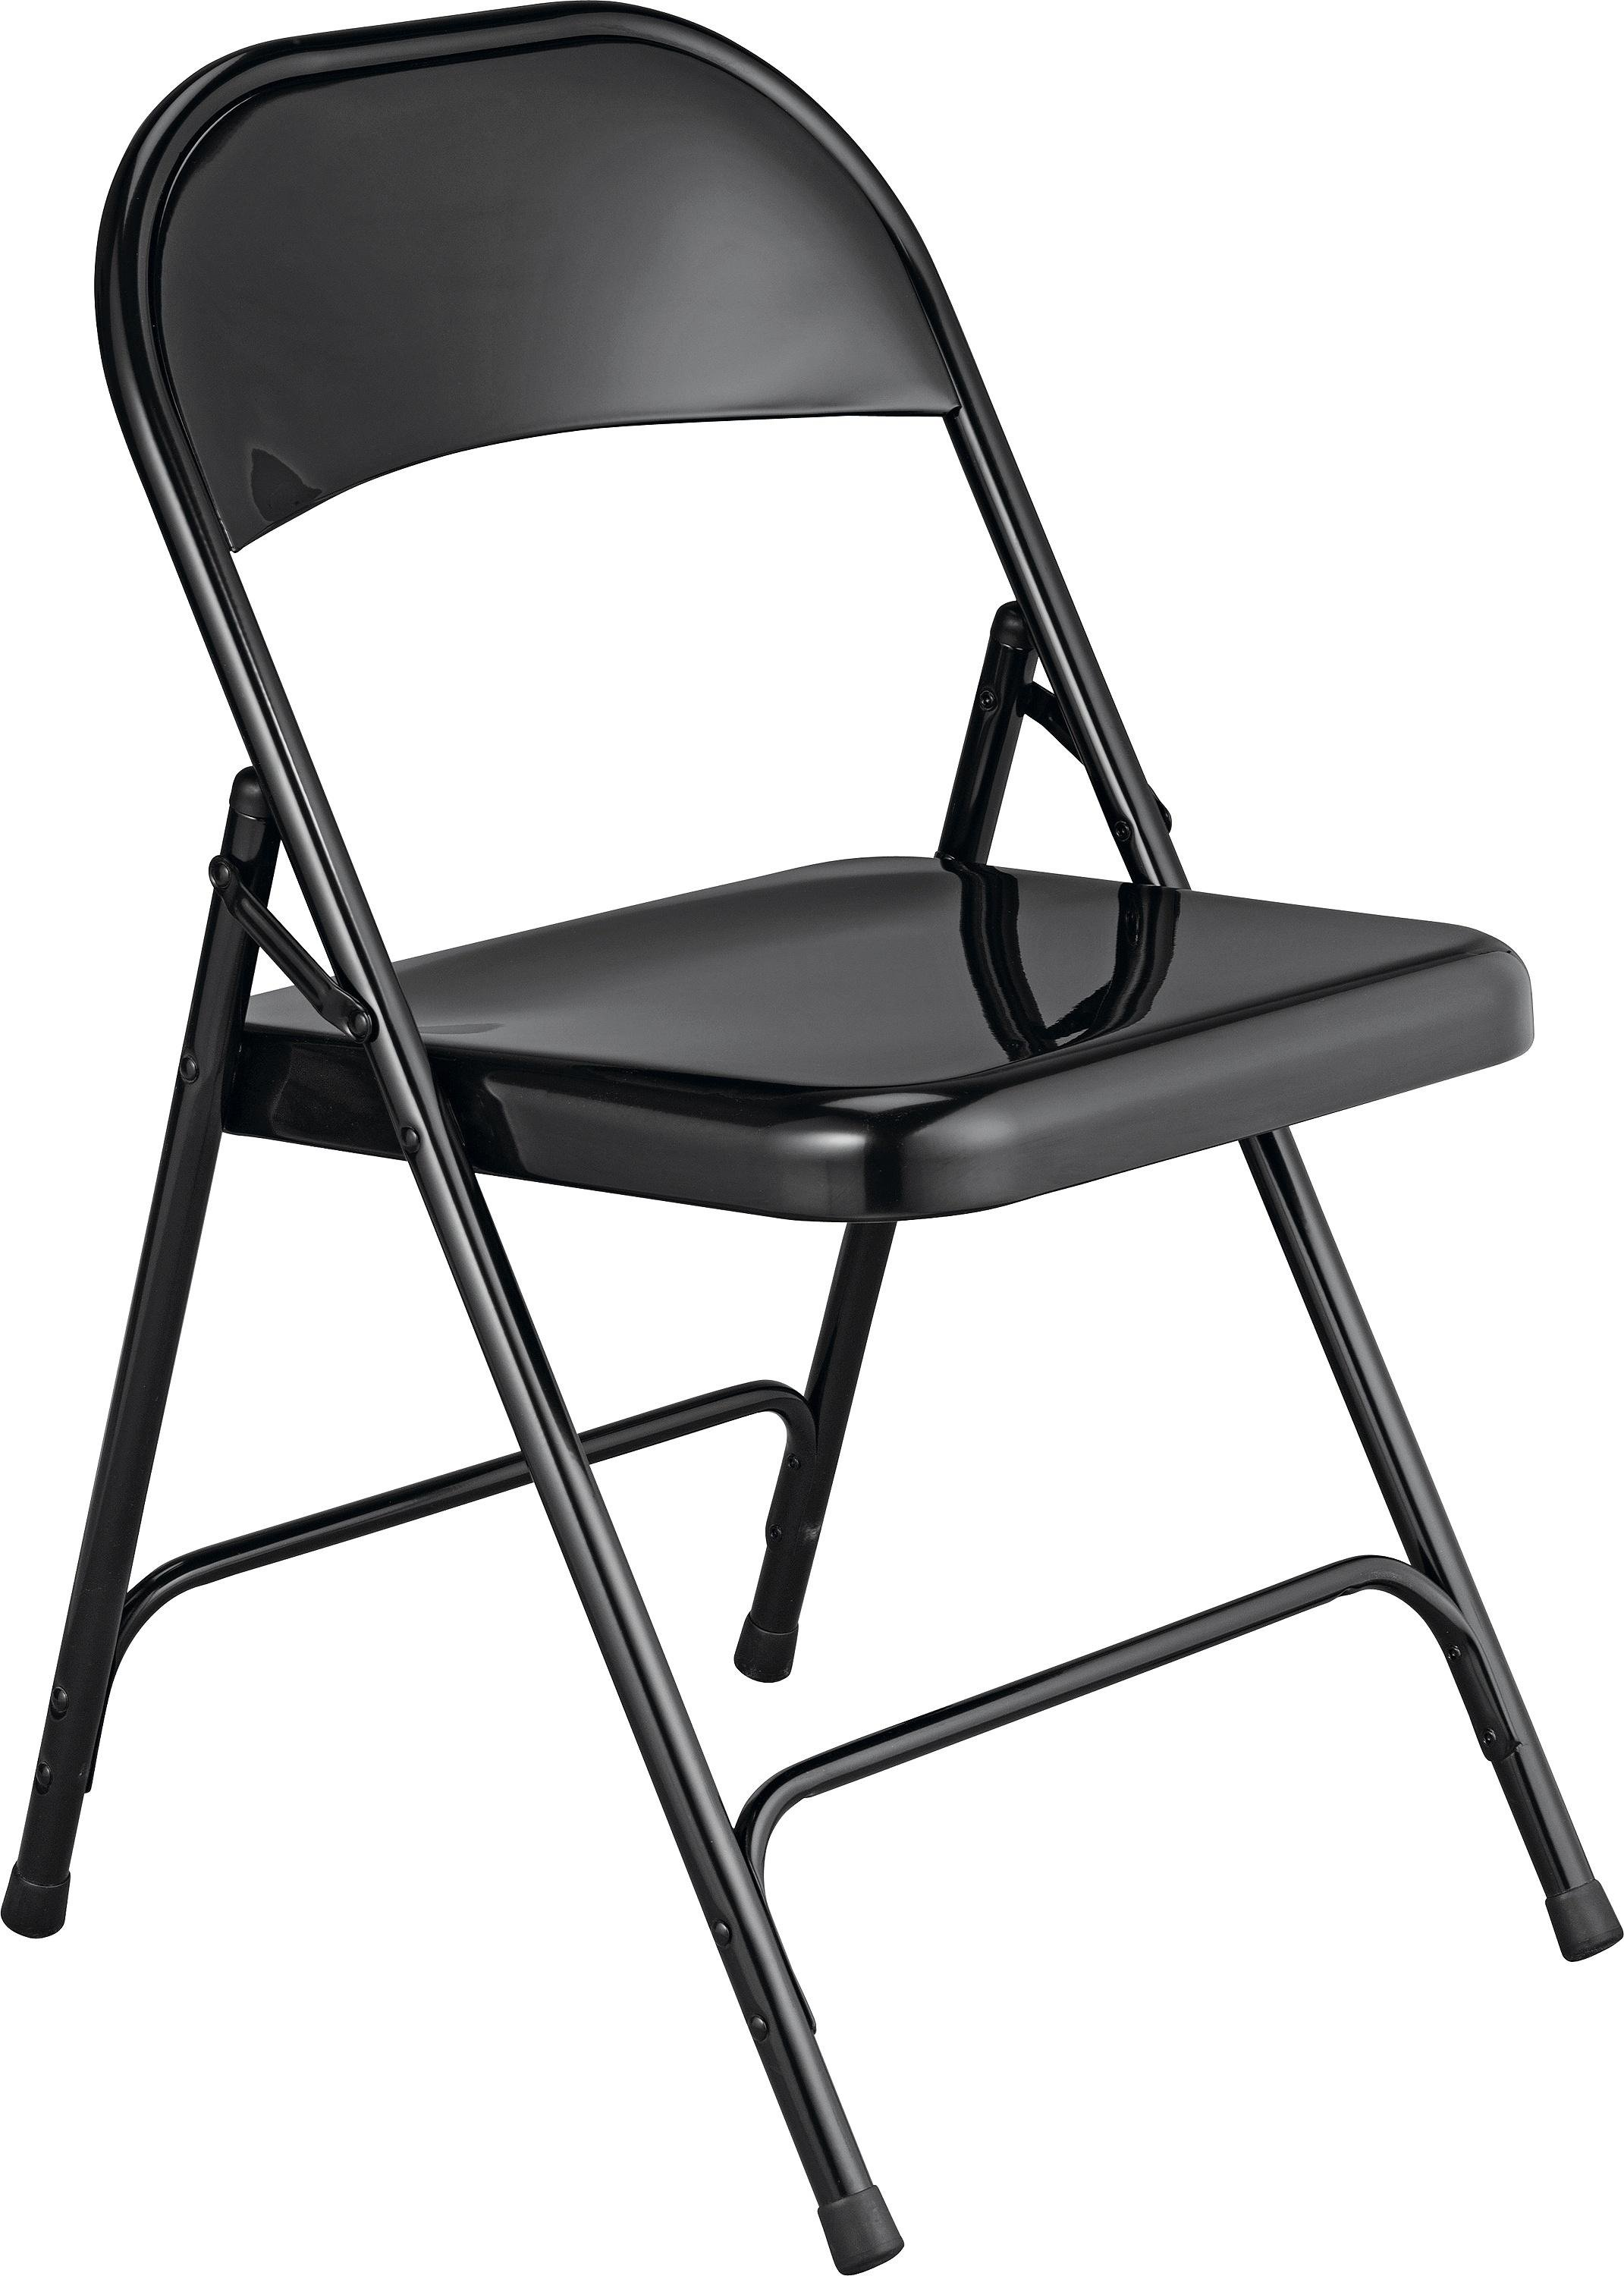 Marvelous Habitat Macadam Metal Folding Chair   Black